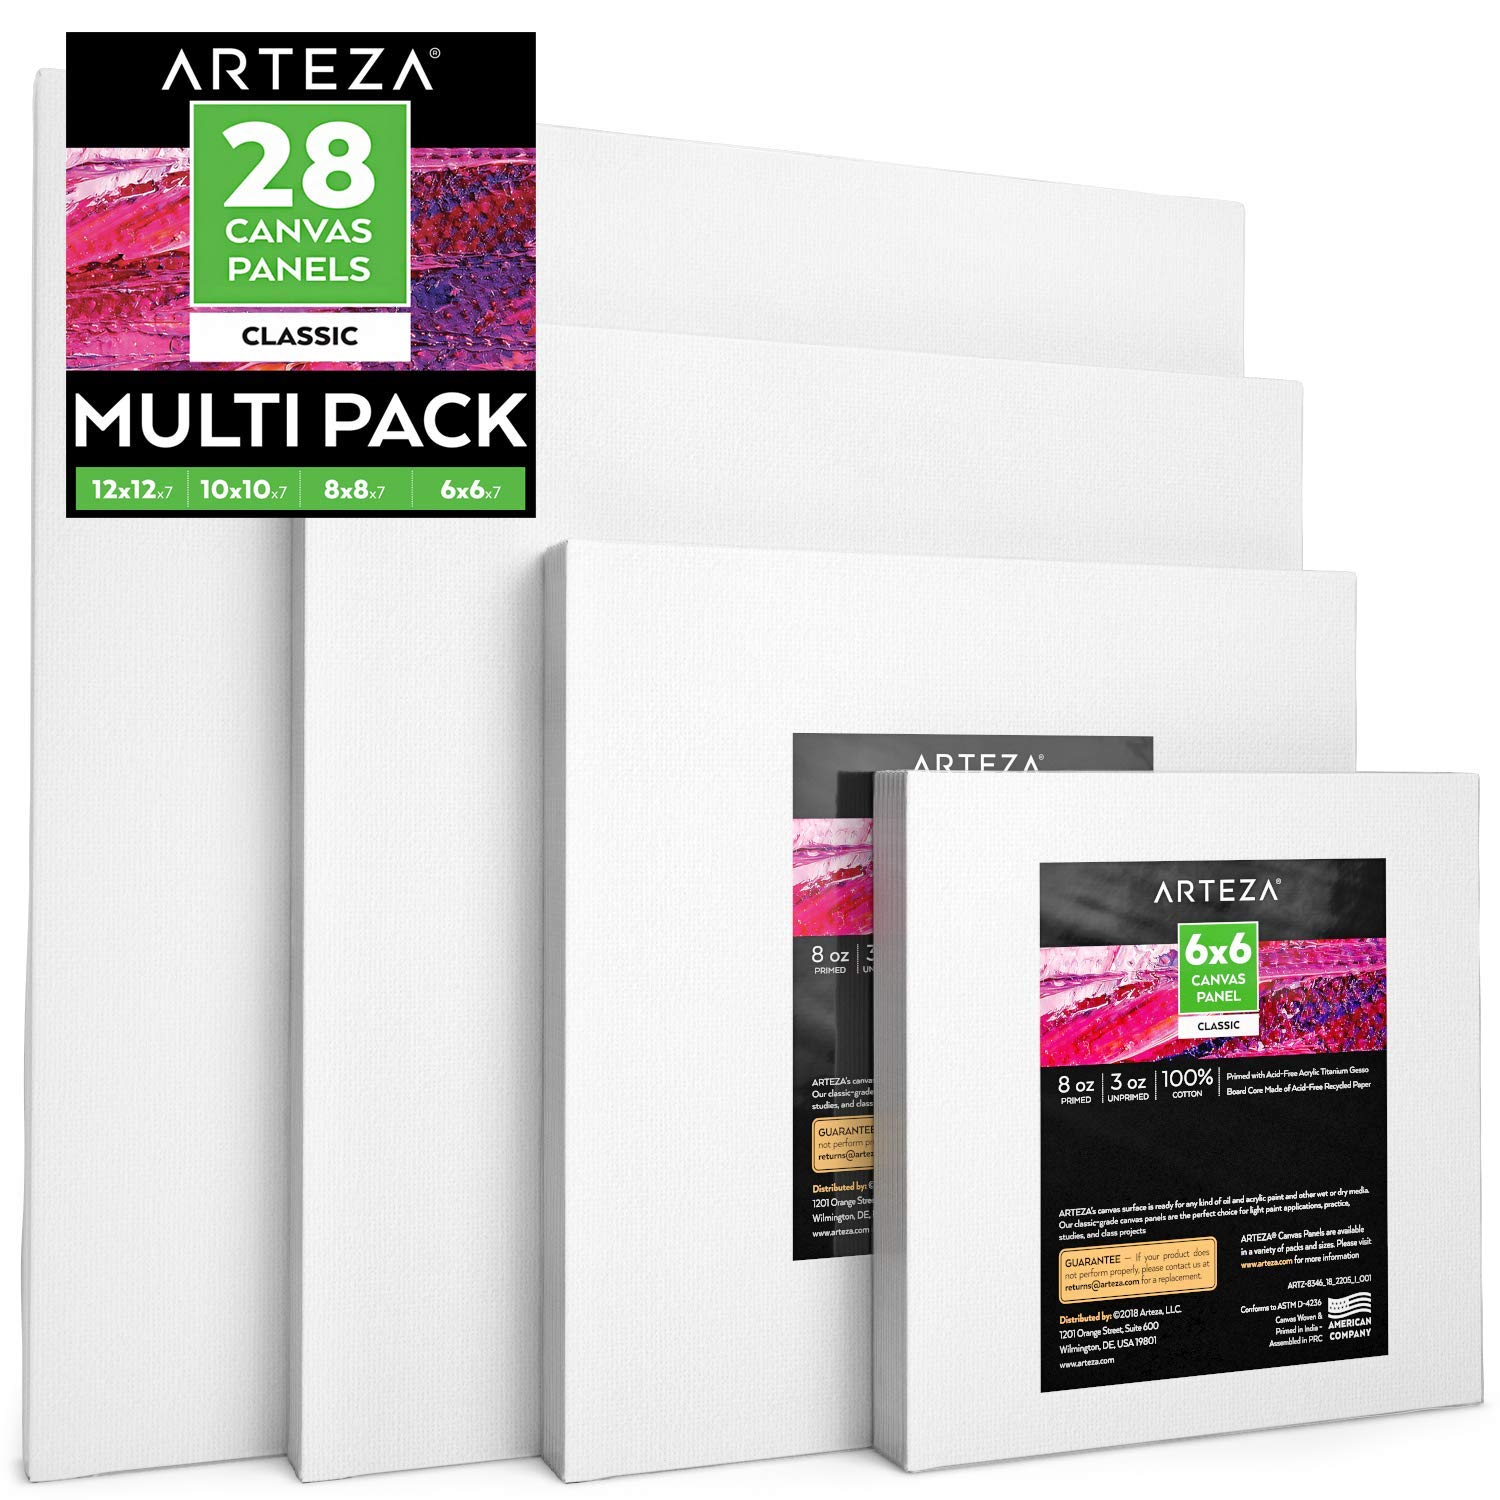 Arteza Painting Canvas Panels Multi Pack, 6x6'', 8x8'', 10x10'', 12x12'' Set of 28, Primed White, 100% Cotton with Recycled Board Core, for Acrylic, Oil, Other Wet or Dry Art Media, for Artists